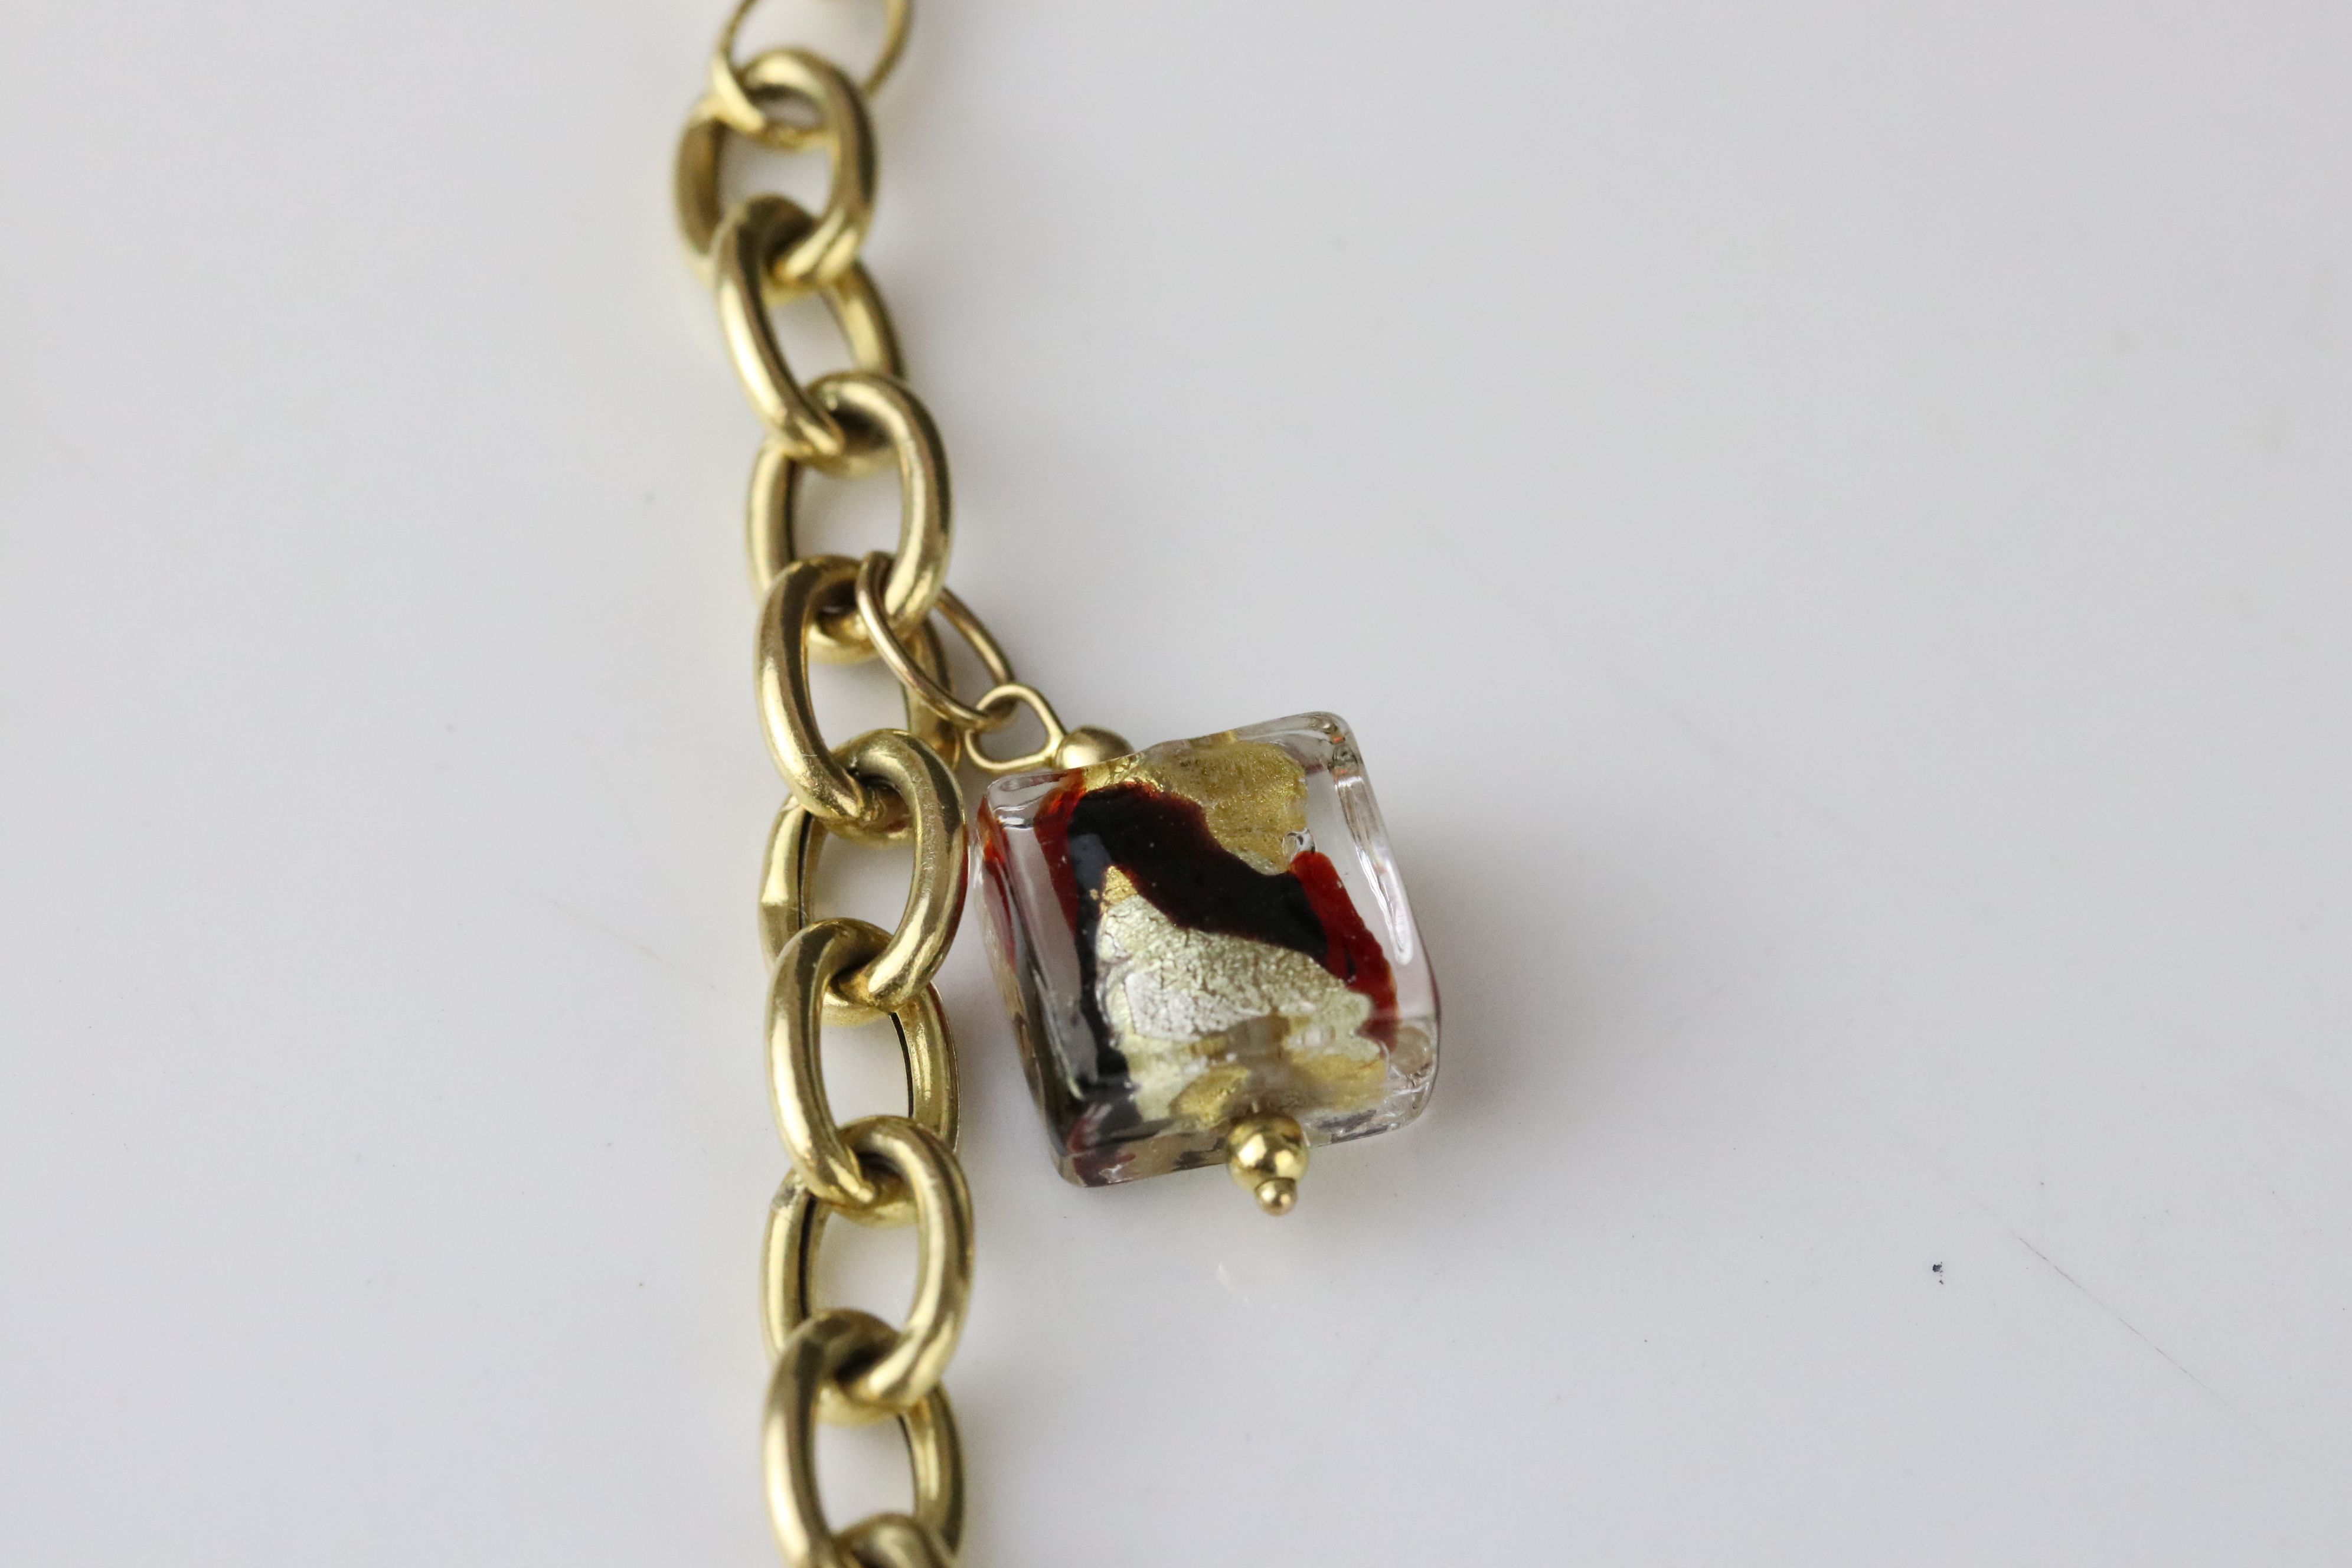 14ct yellow gold charm bracelet with five Murano style glass charms, lobster clasp, length approx - Image 5 of 5